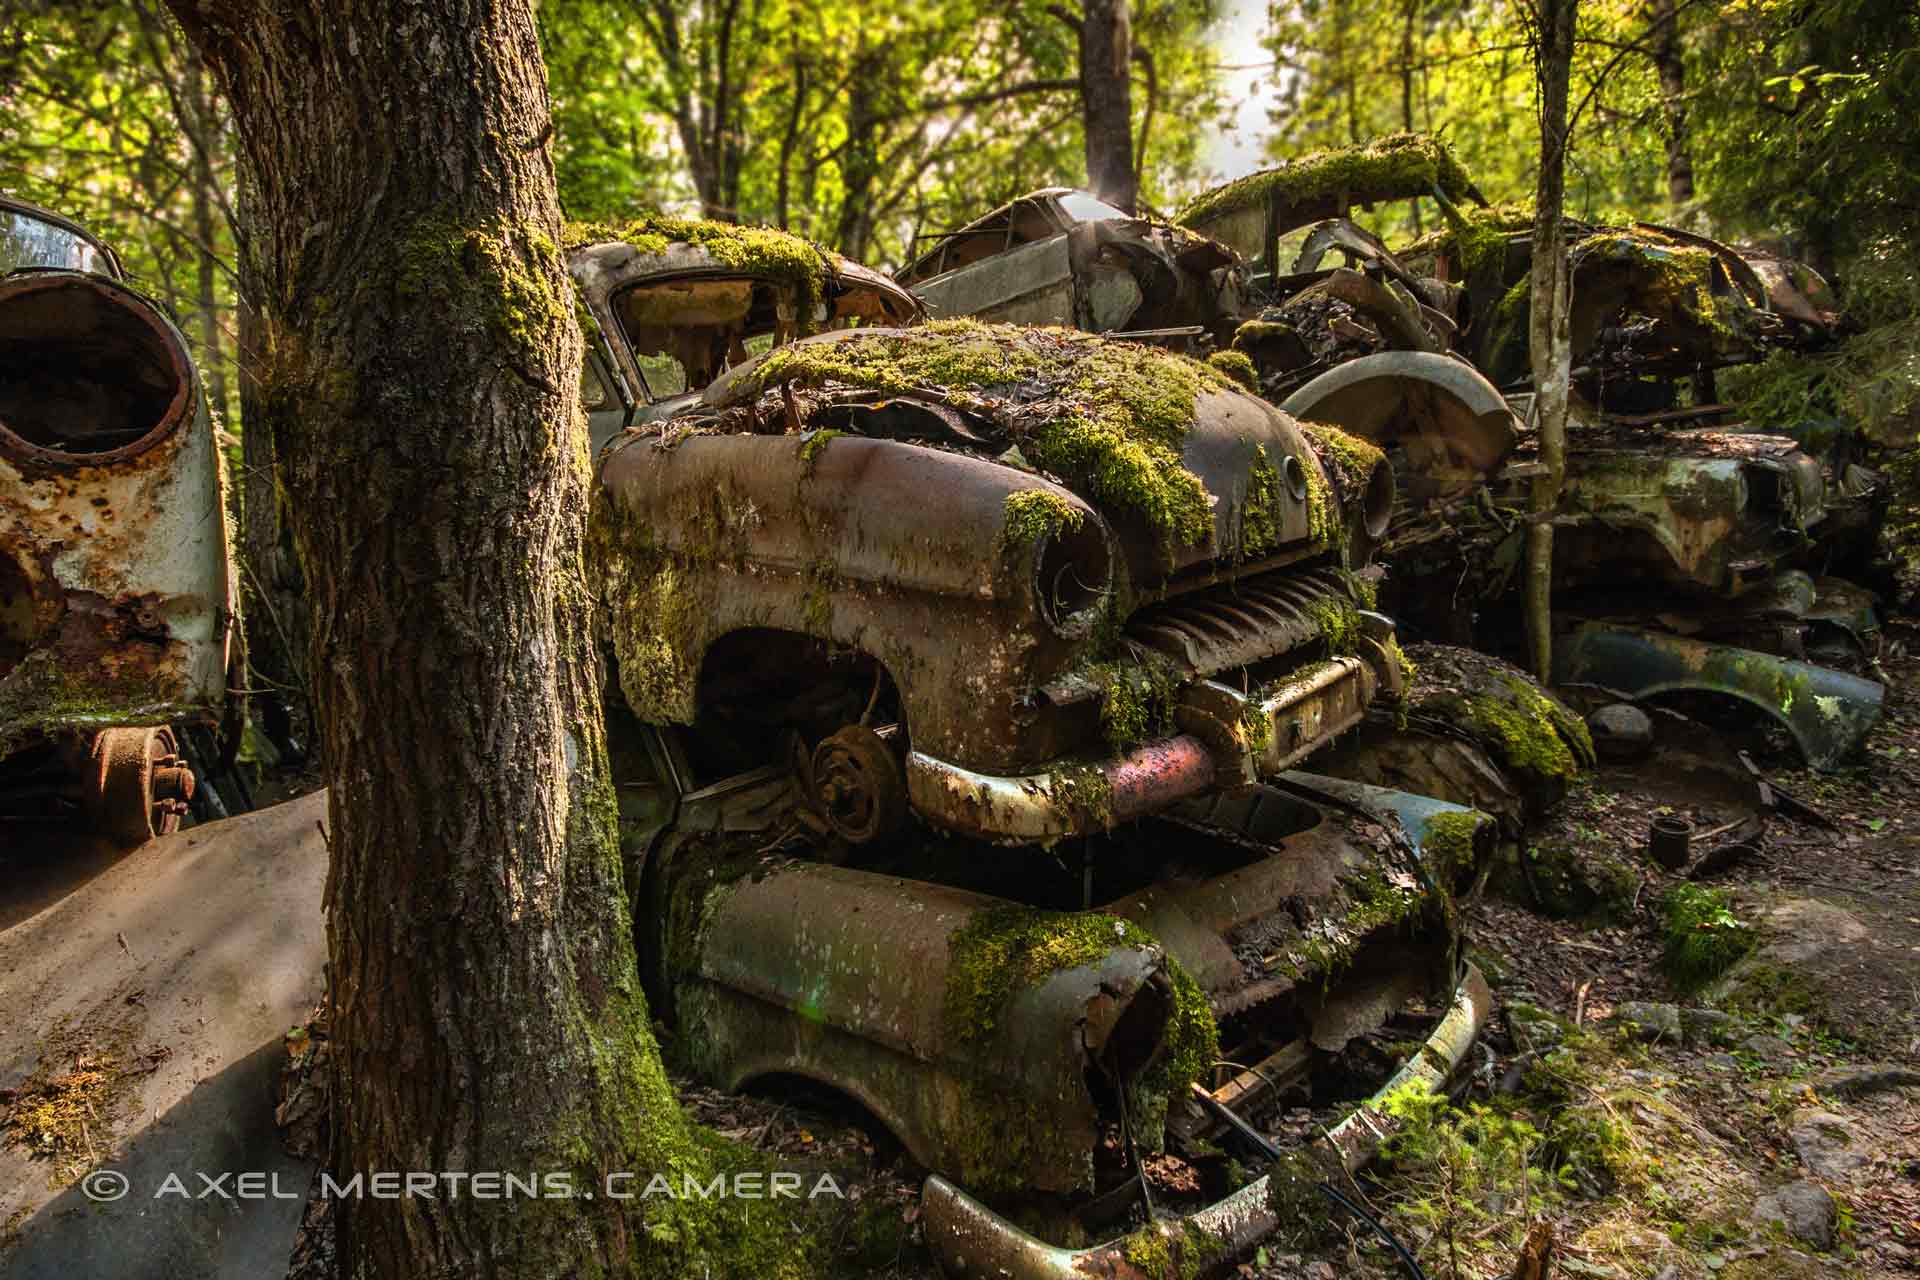 lost place – Autofriedhof